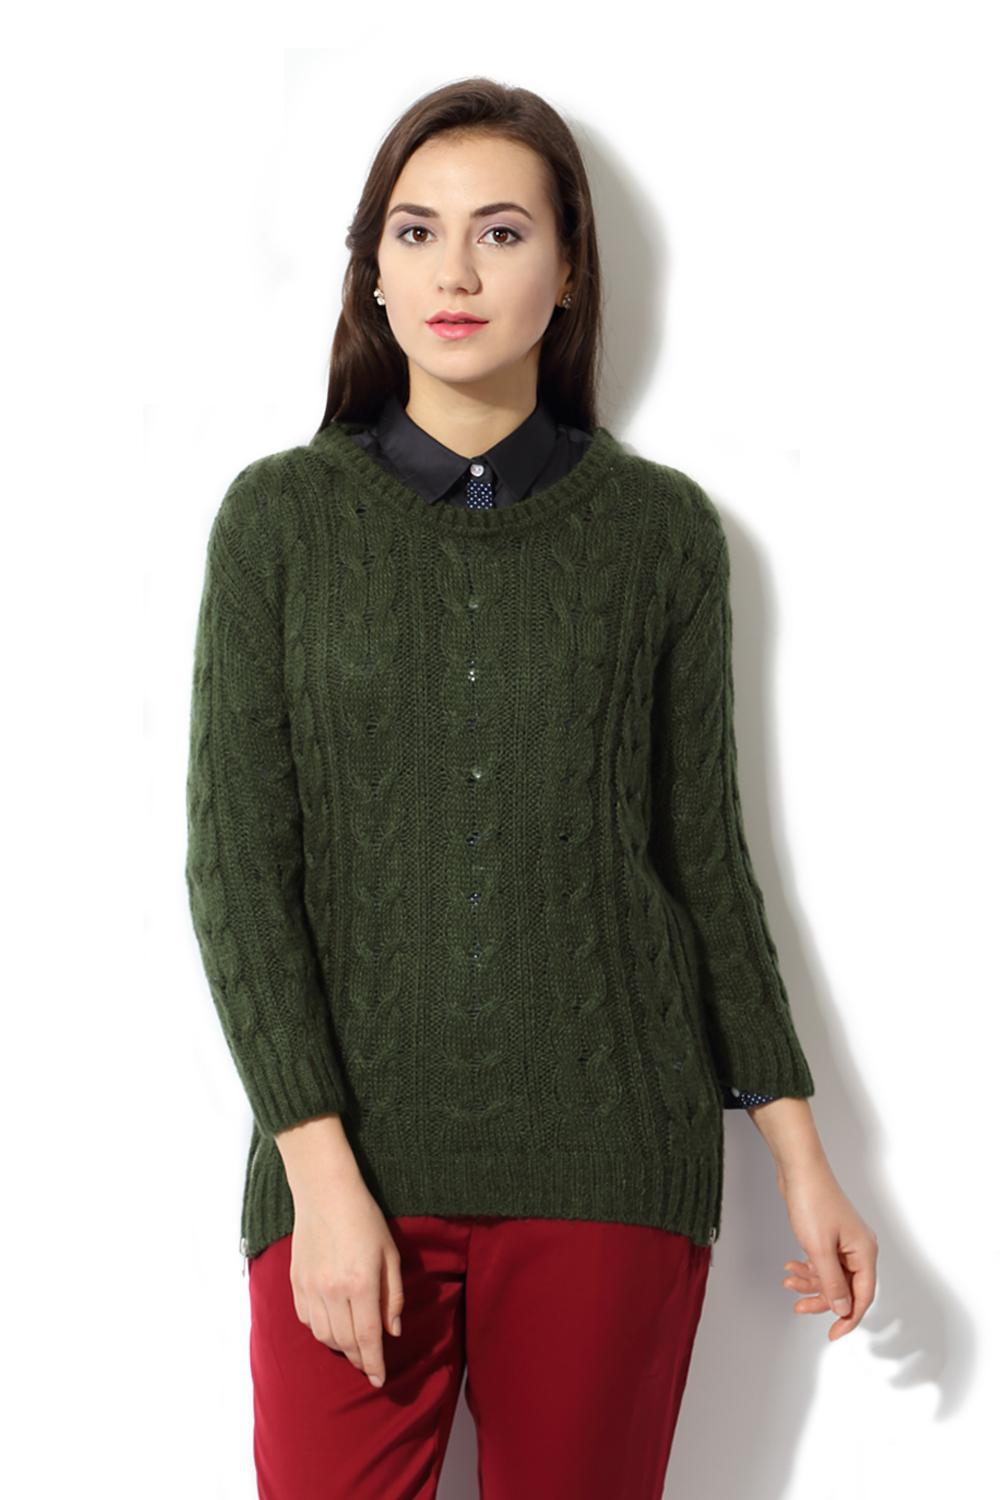 Solly Sweaters Cardigans Allen Solly Green Sweater For Women At Allensollycom